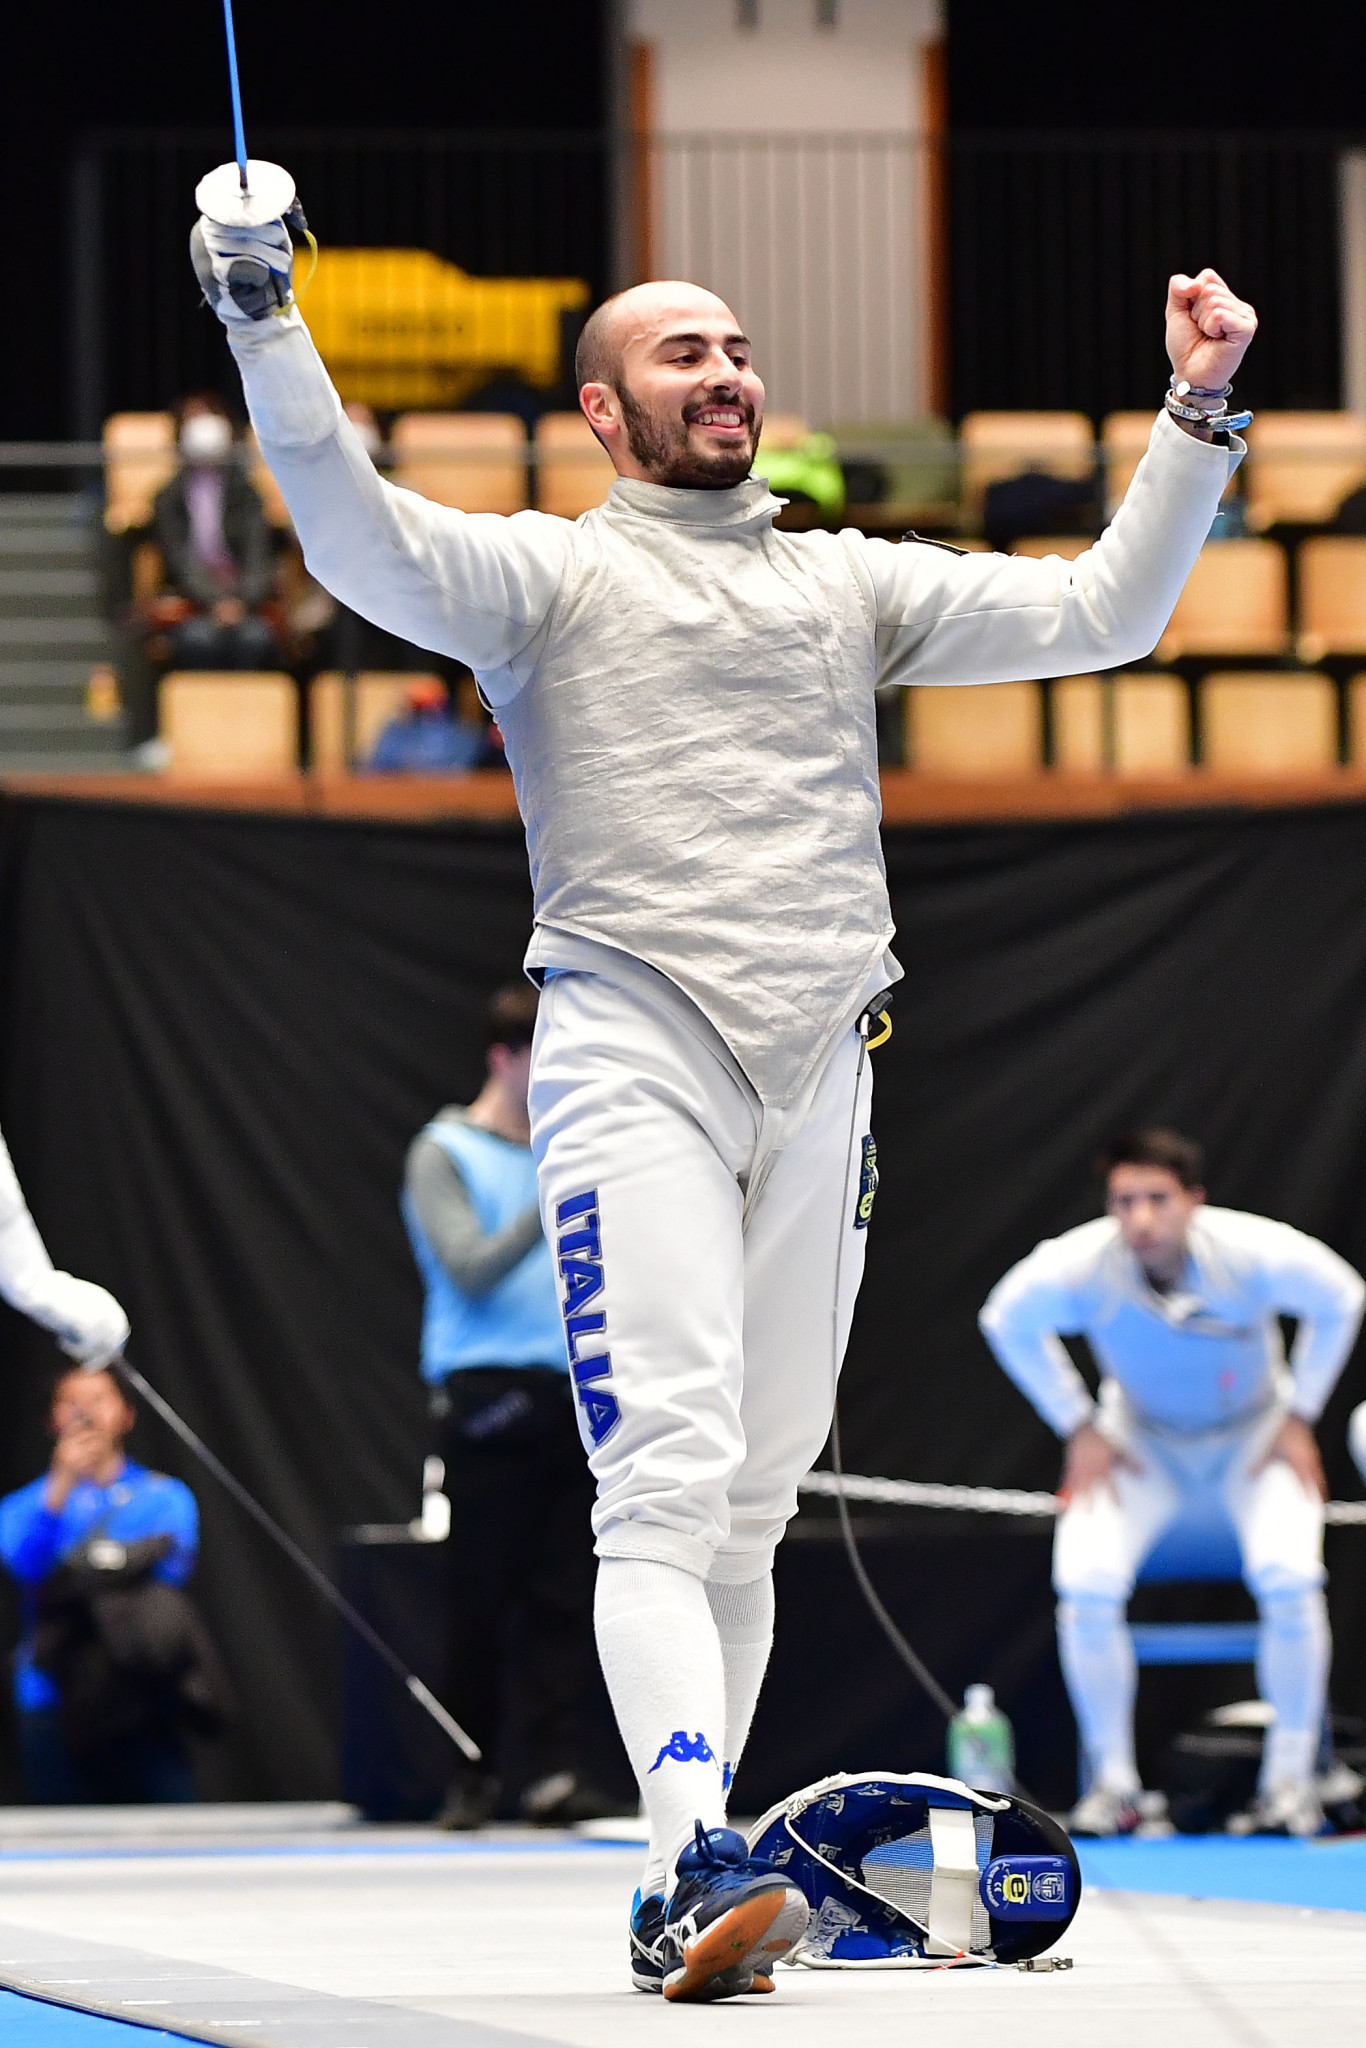 Italy and United States poised for battle in FIE Men's Foil Tokyo 2020 test event